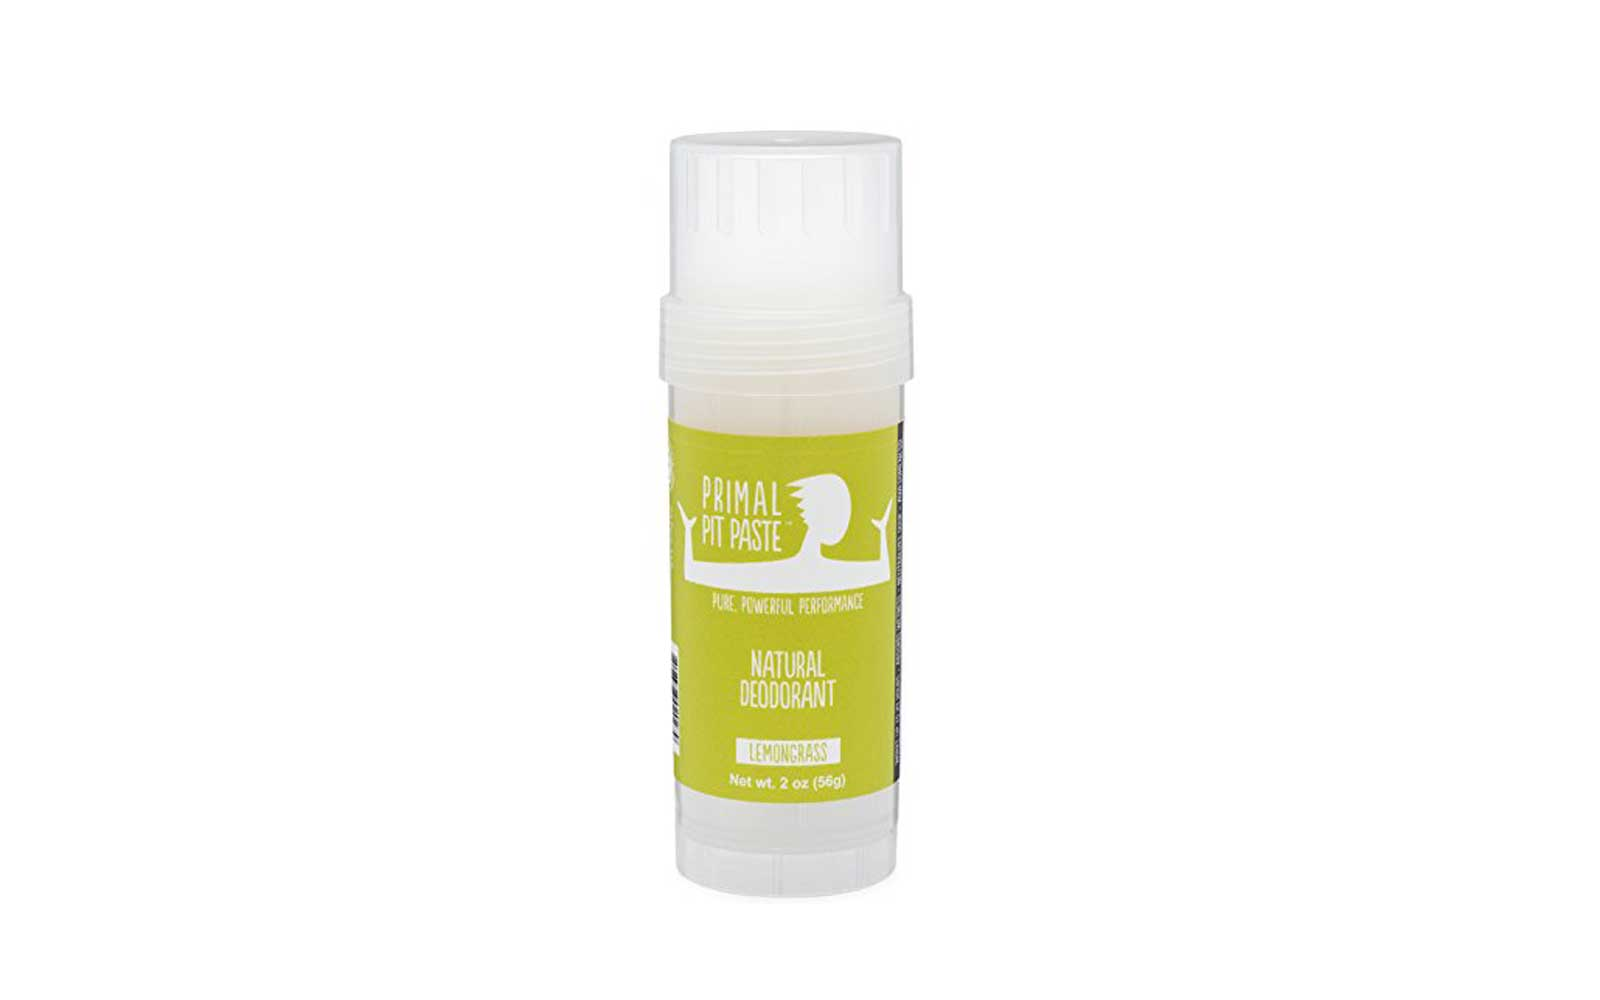 Primal Pit Paste All Natural Lemongrass Deodorant